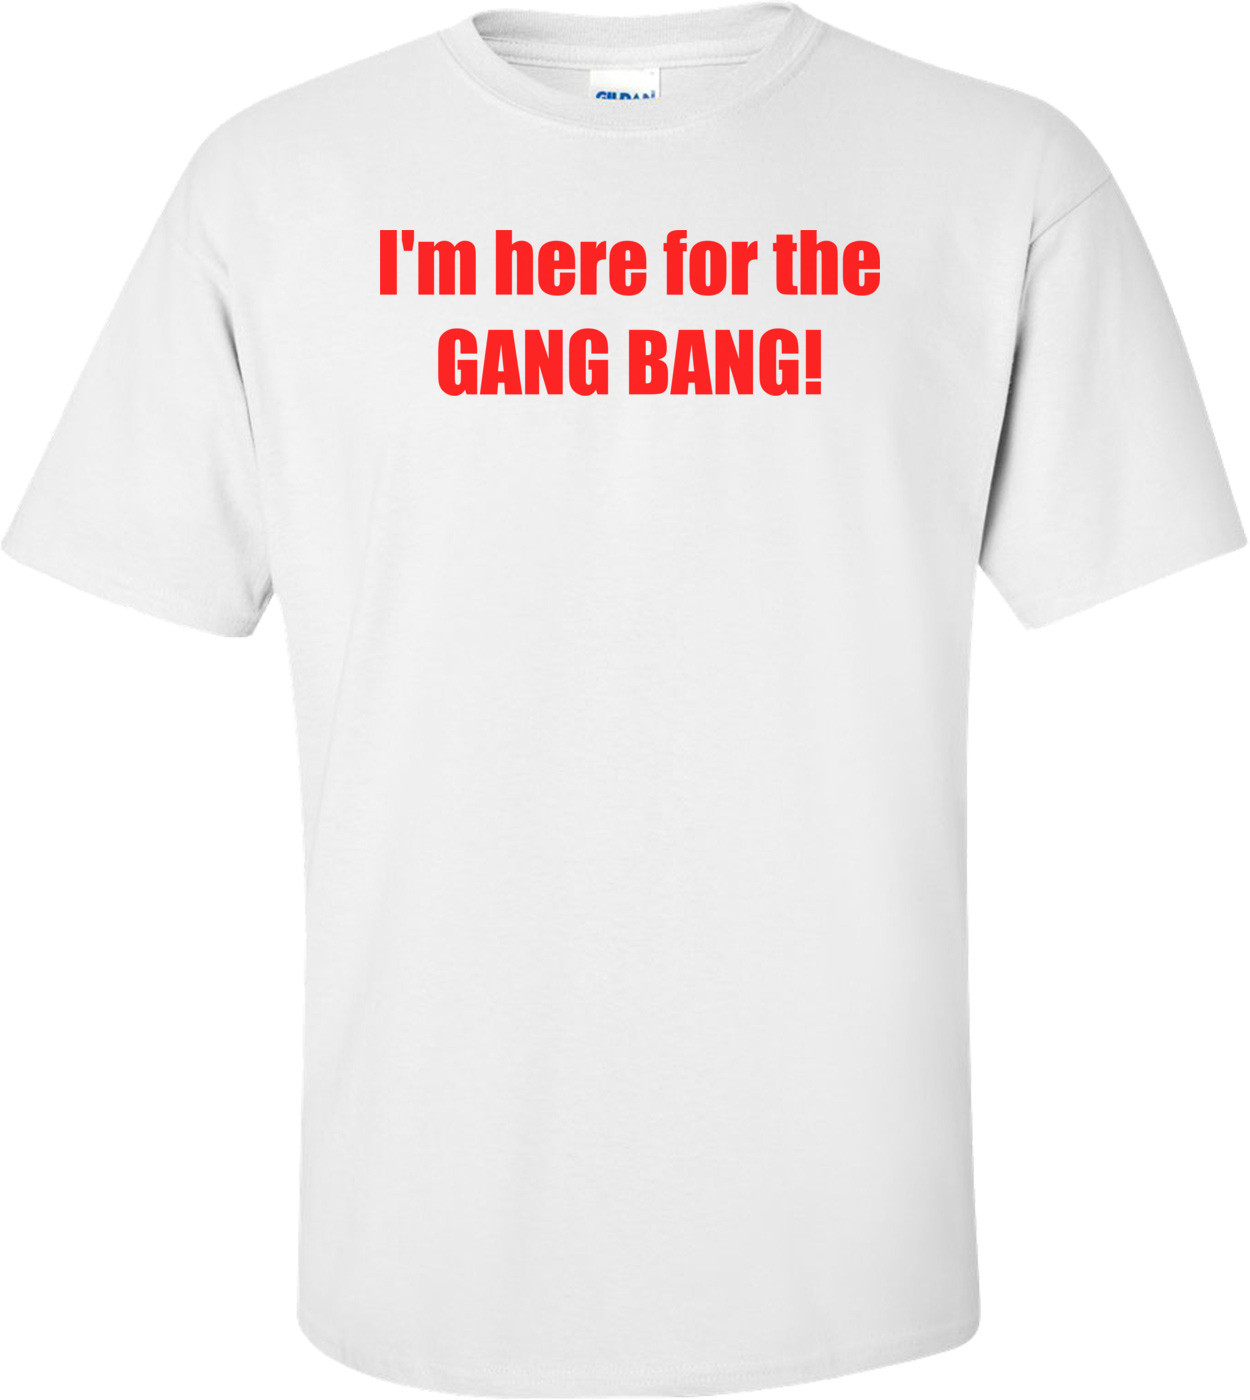 I'm here for the GANG BANG! Shirt